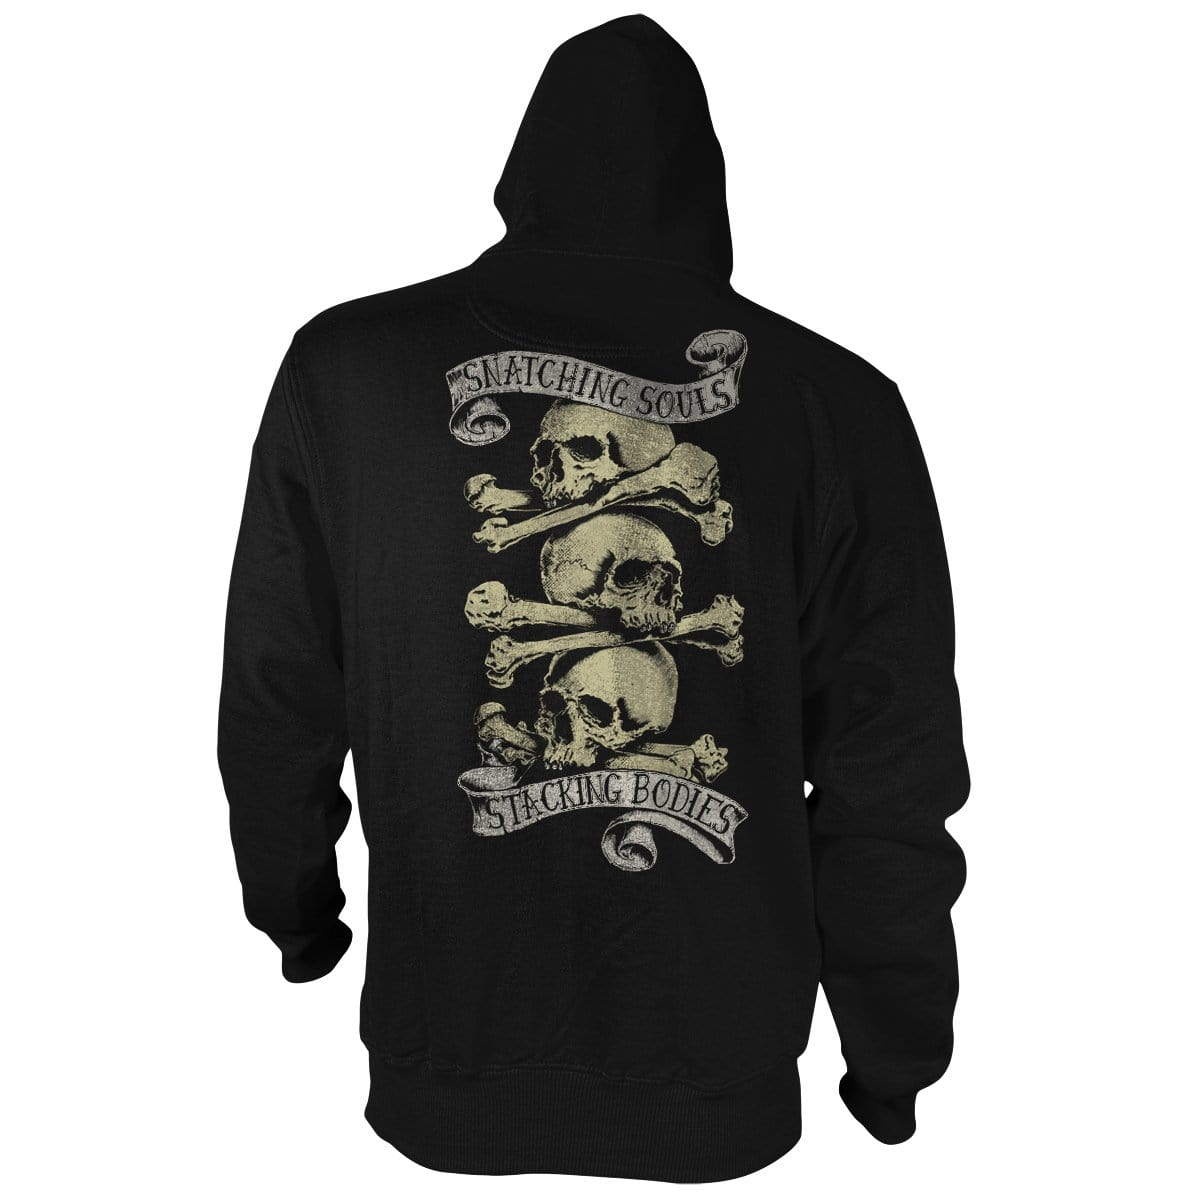 Snatchin' Souls Stackin' Bodies - Hoodie - Pipe Hitters Union